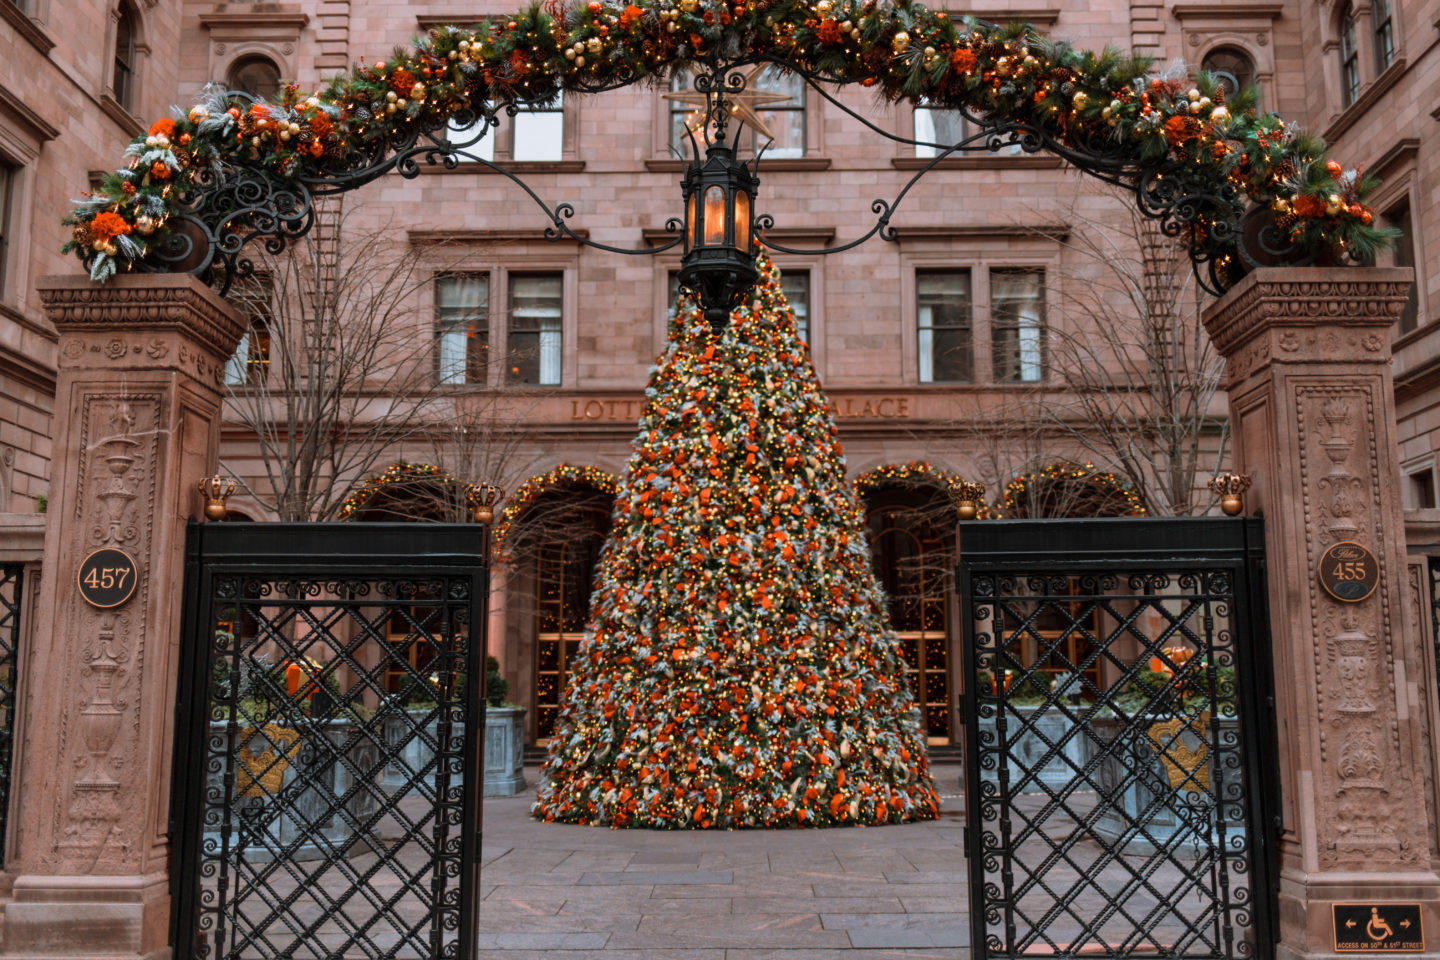 How to Spend Christmas in New York City | 8 Festive Ways